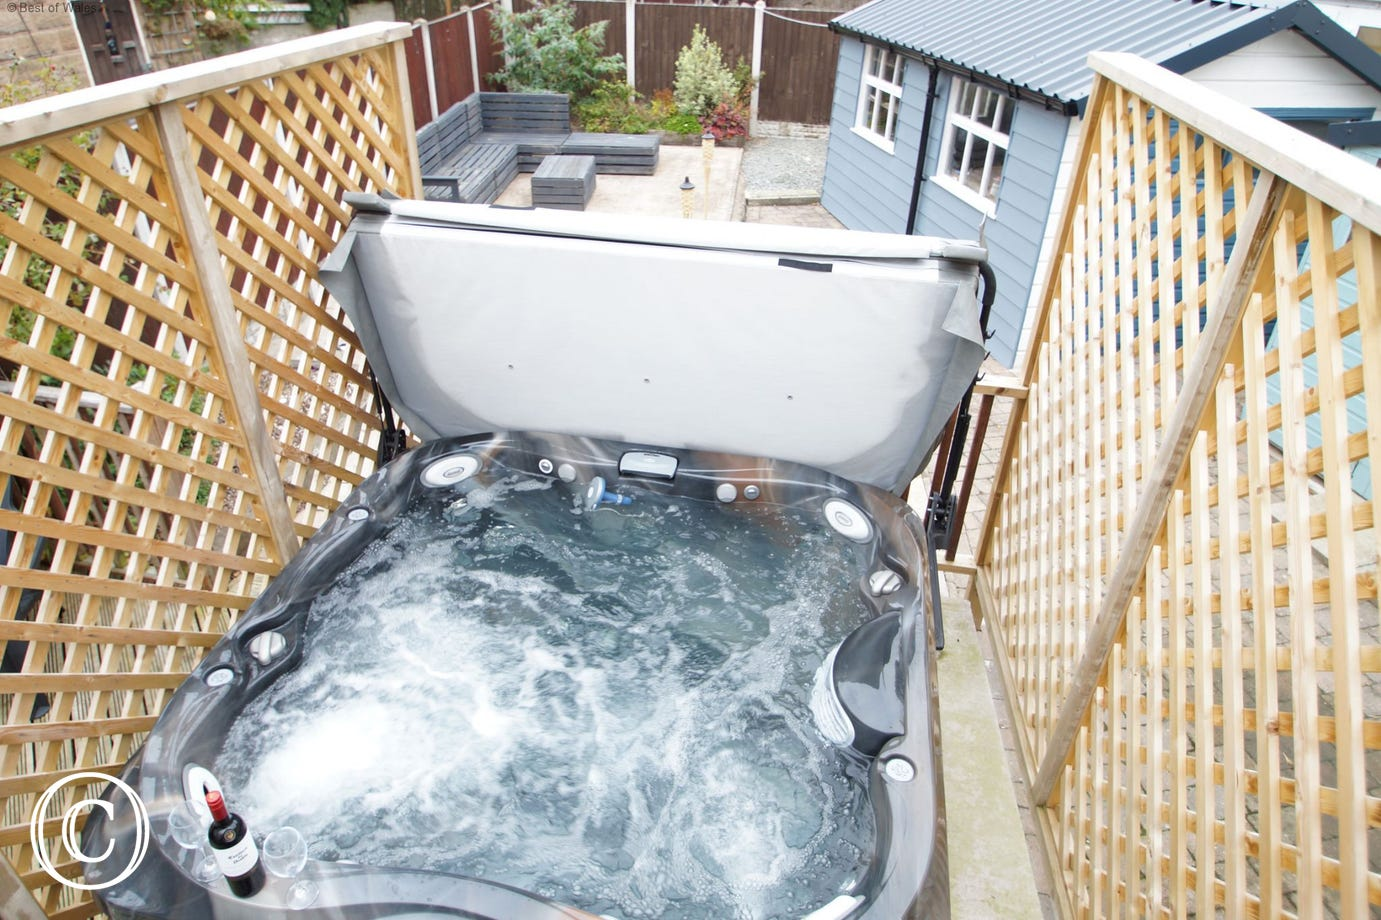 Llandudno self catering house with a large hot tub in the garden